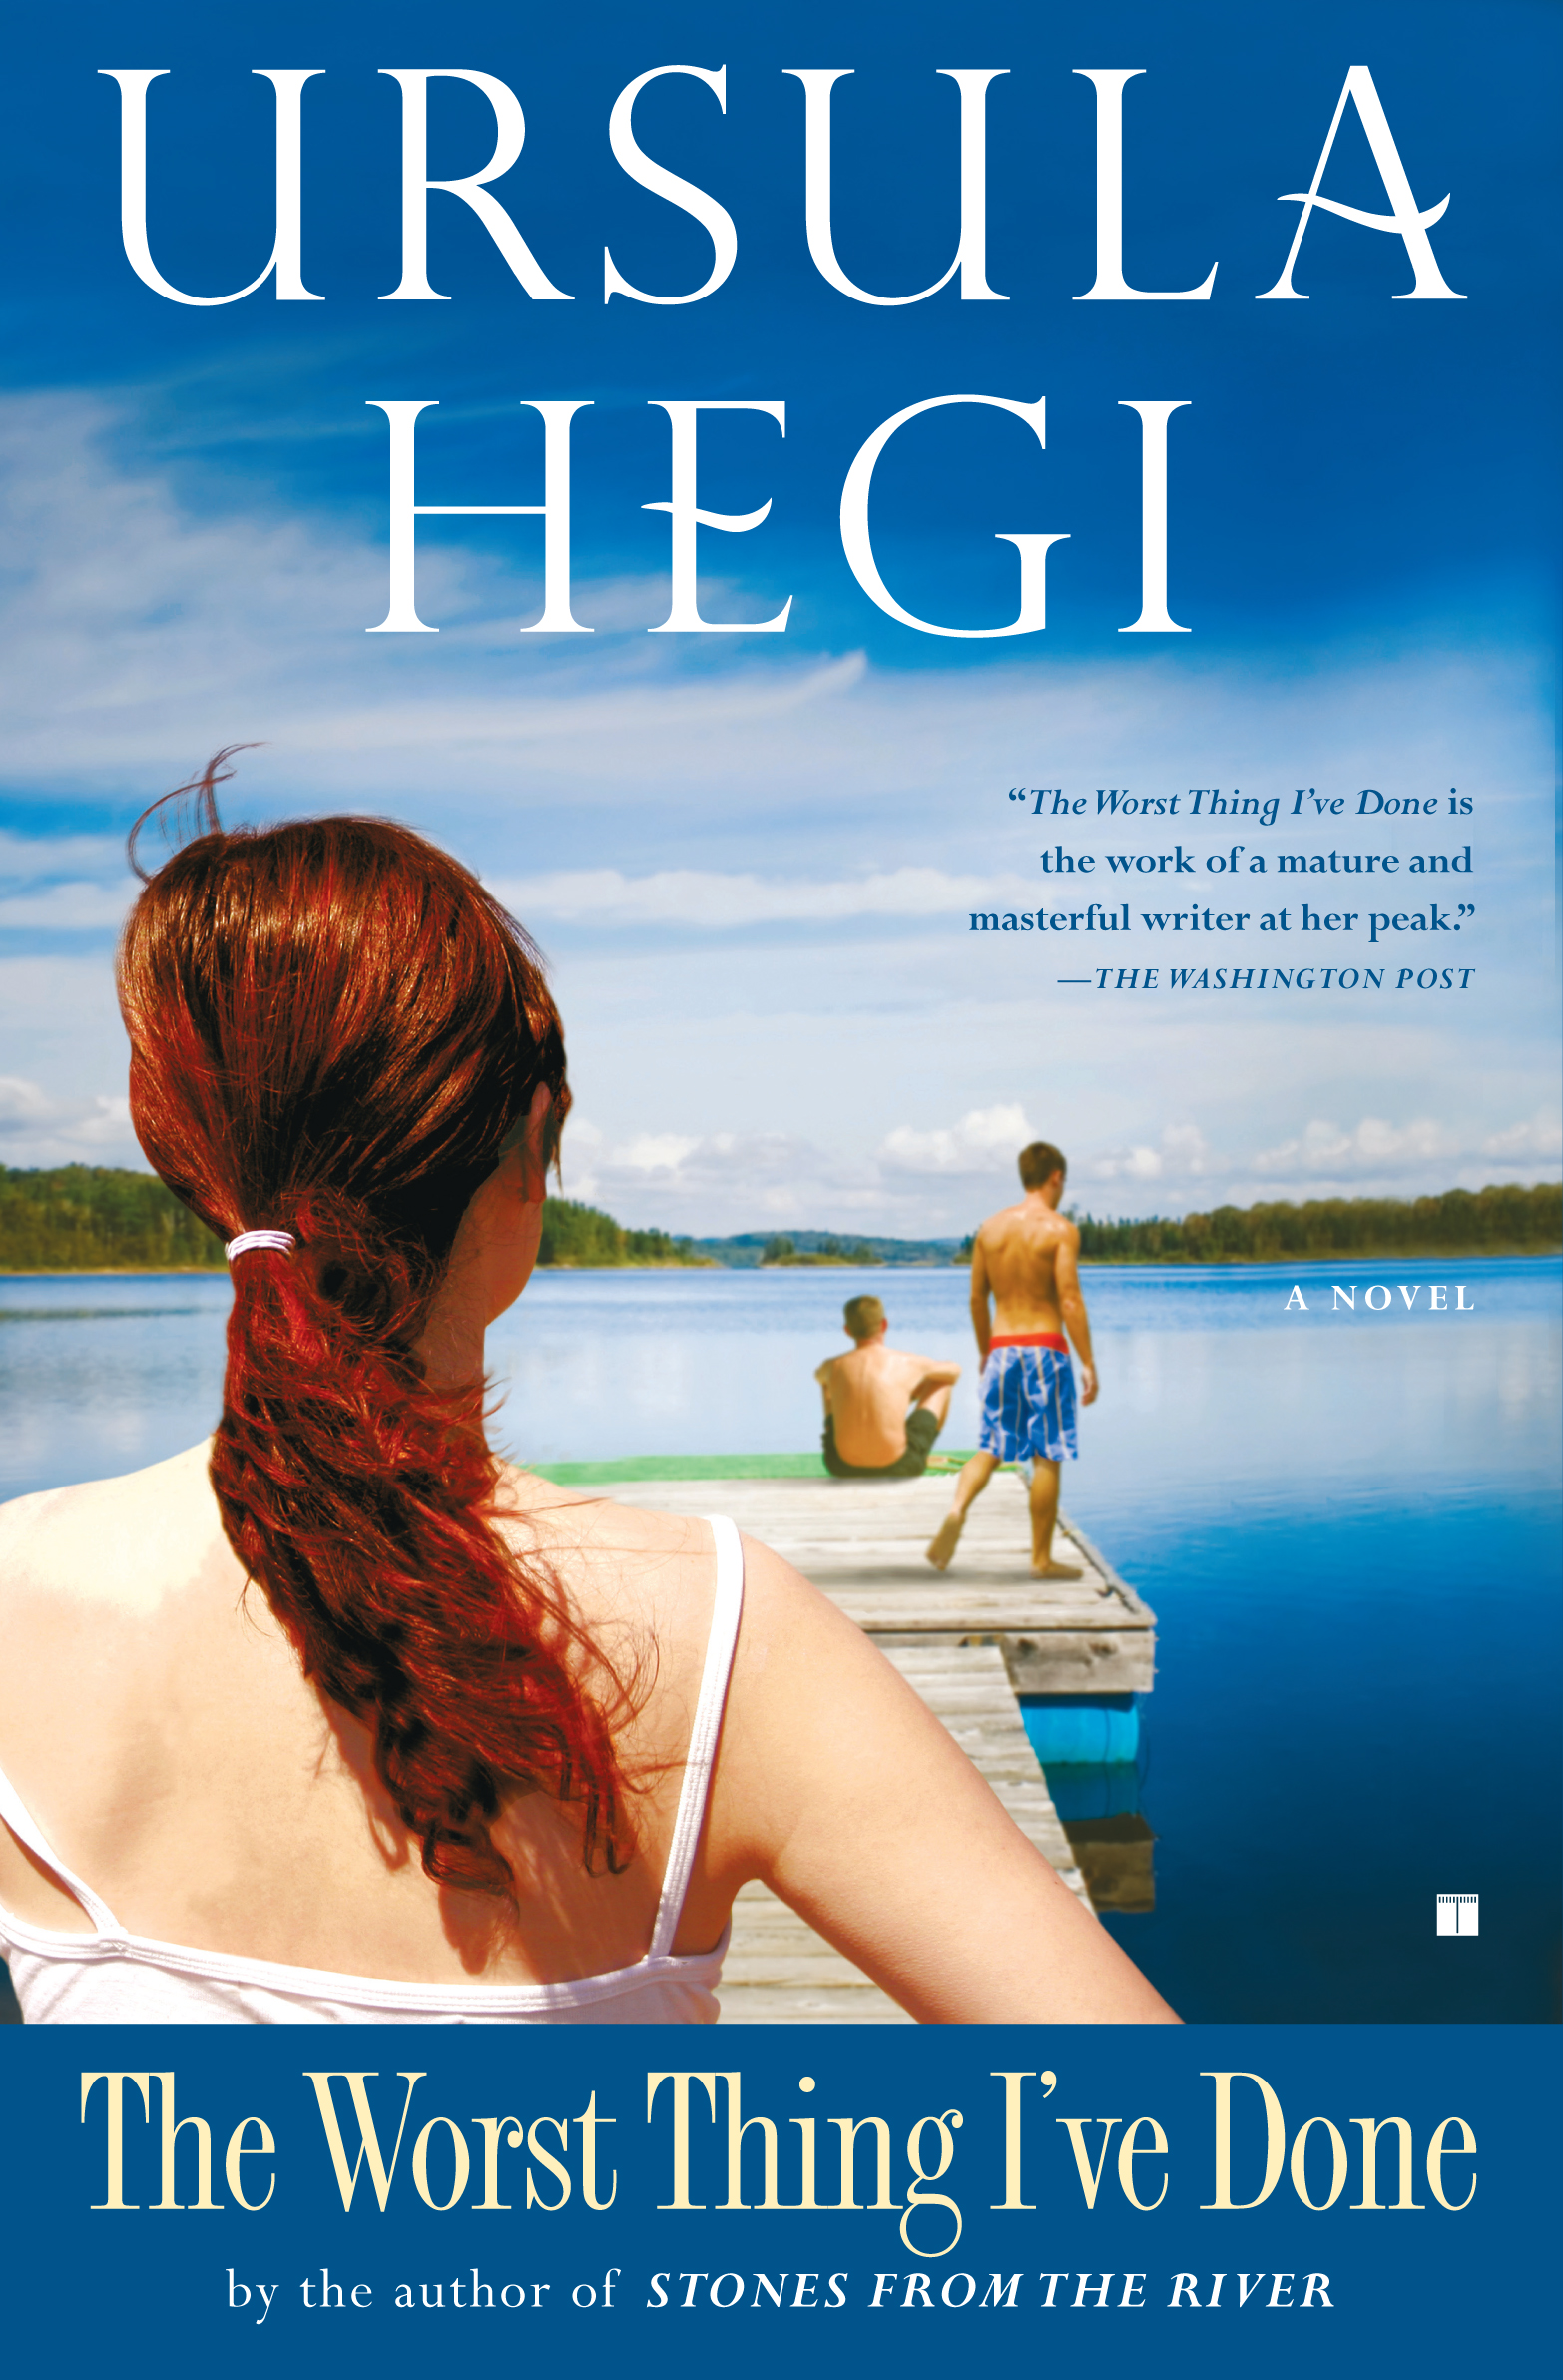 a literary analysis of stones from the river by ursula hegi Ursula hegi (born may 23, 1946 where she became an associate professor and taught creative writing and contemporary literature hegi's first stones from the.